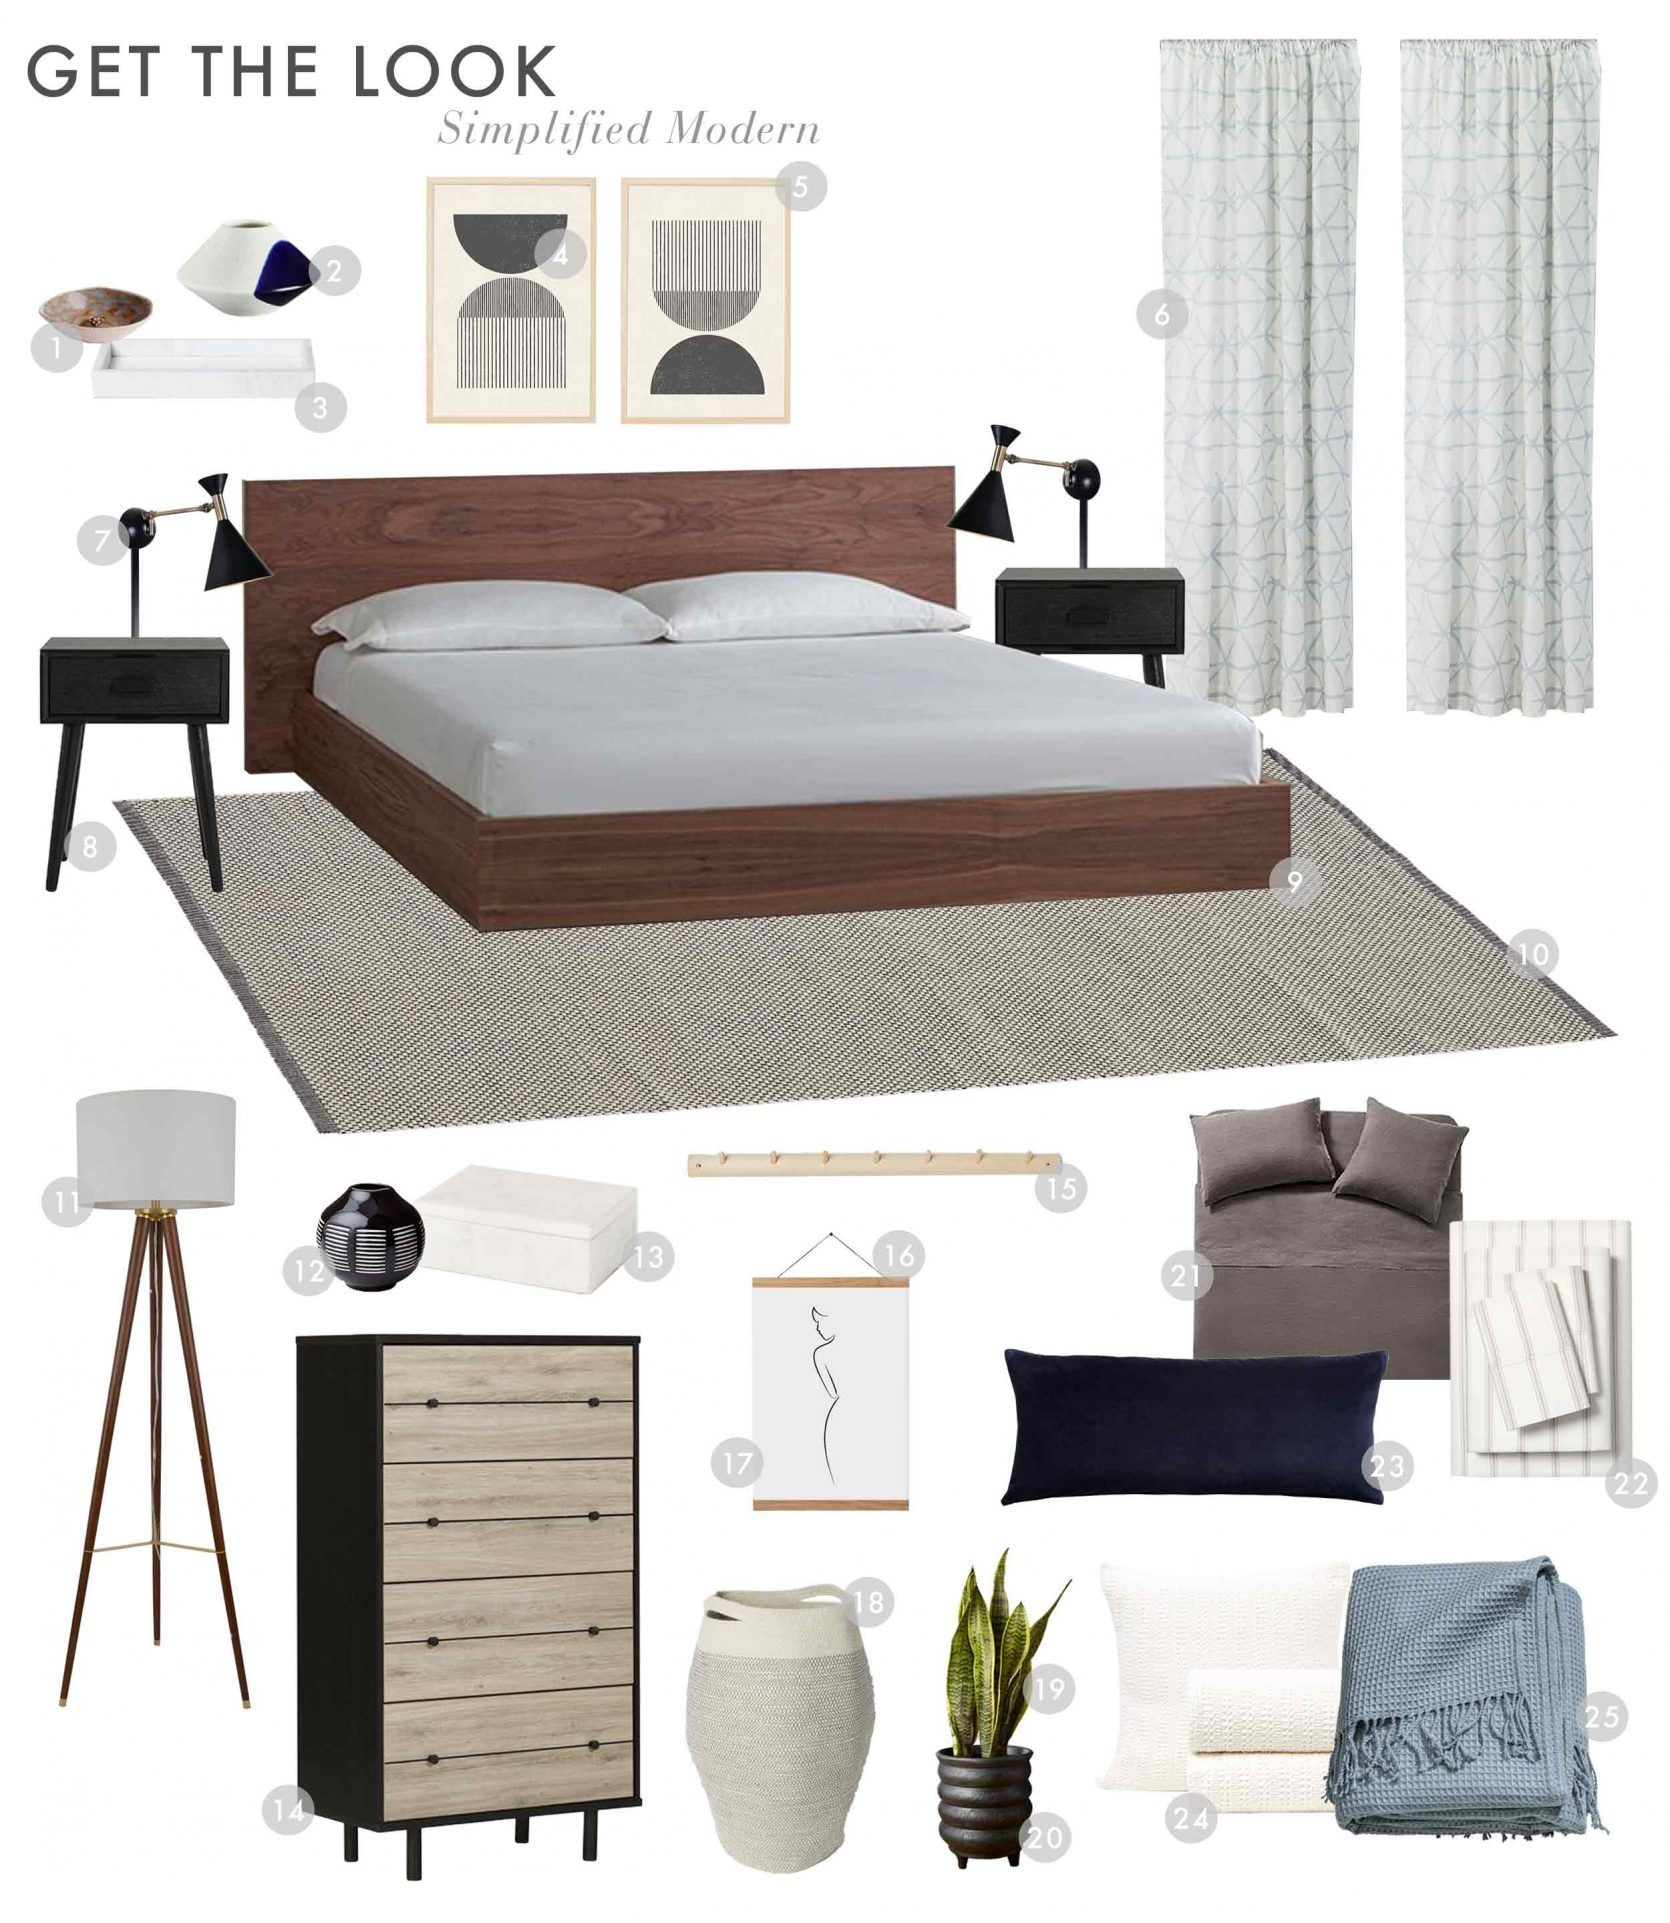 3 Ways To Decorate A Renter Friendly Bedroom On A Budget Bedroom Decor Home Decor Bedroom Home Decor